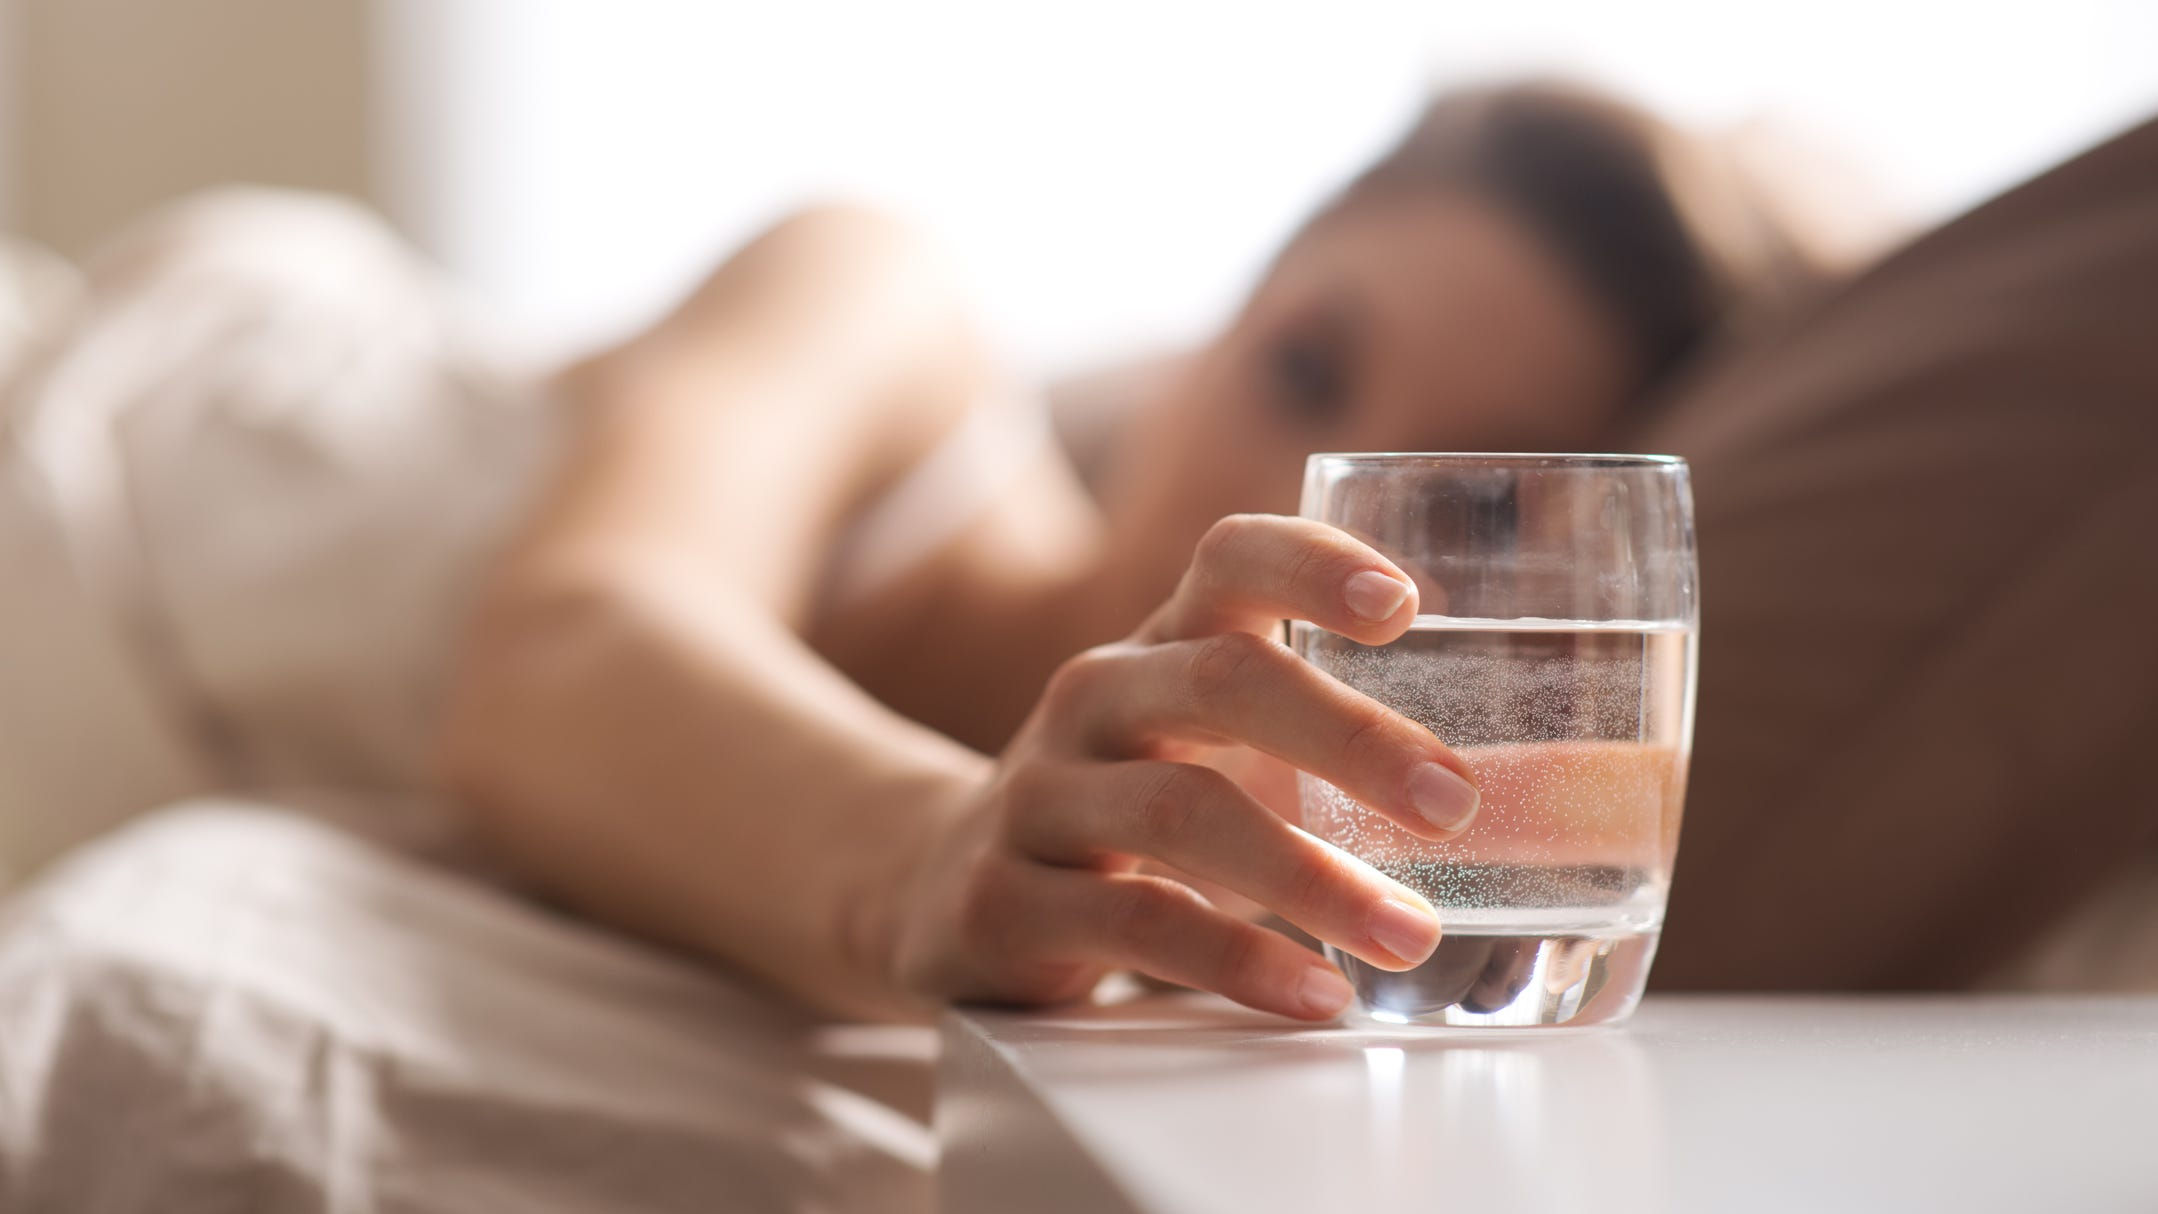 Water every morning first thing has health benefits, experts say